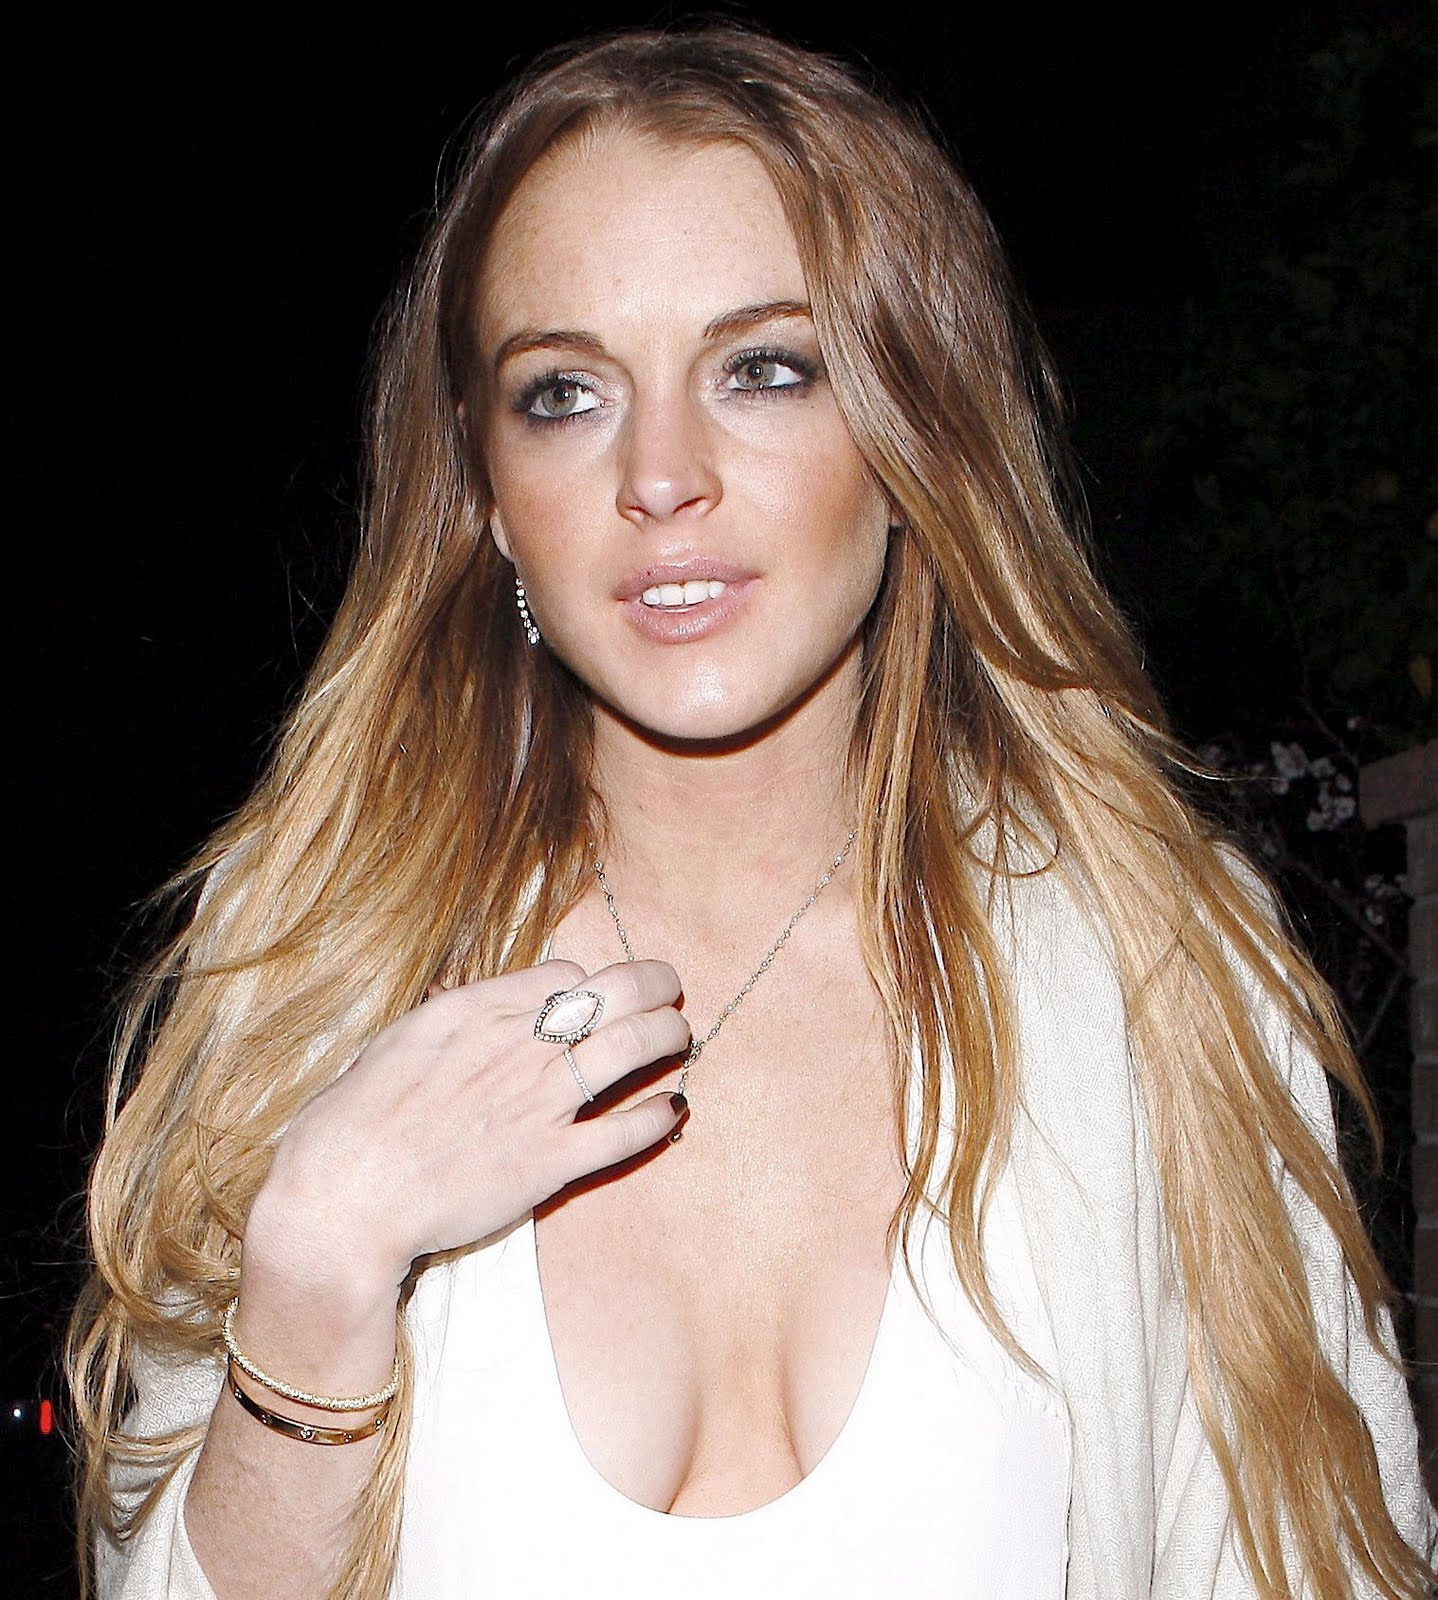 http://2.bp.blogspot.com/-YO3eZpuJPAs/Th7ByckNs-I/AAAAAAAAAJc/J5YrjMsO9Rg/s1600/39183_Celebutopia-Lindsay_Lohan_with_great_cleavage_at_pre_Oscar_party_in_Hollywood-22_122_580lo.JPG